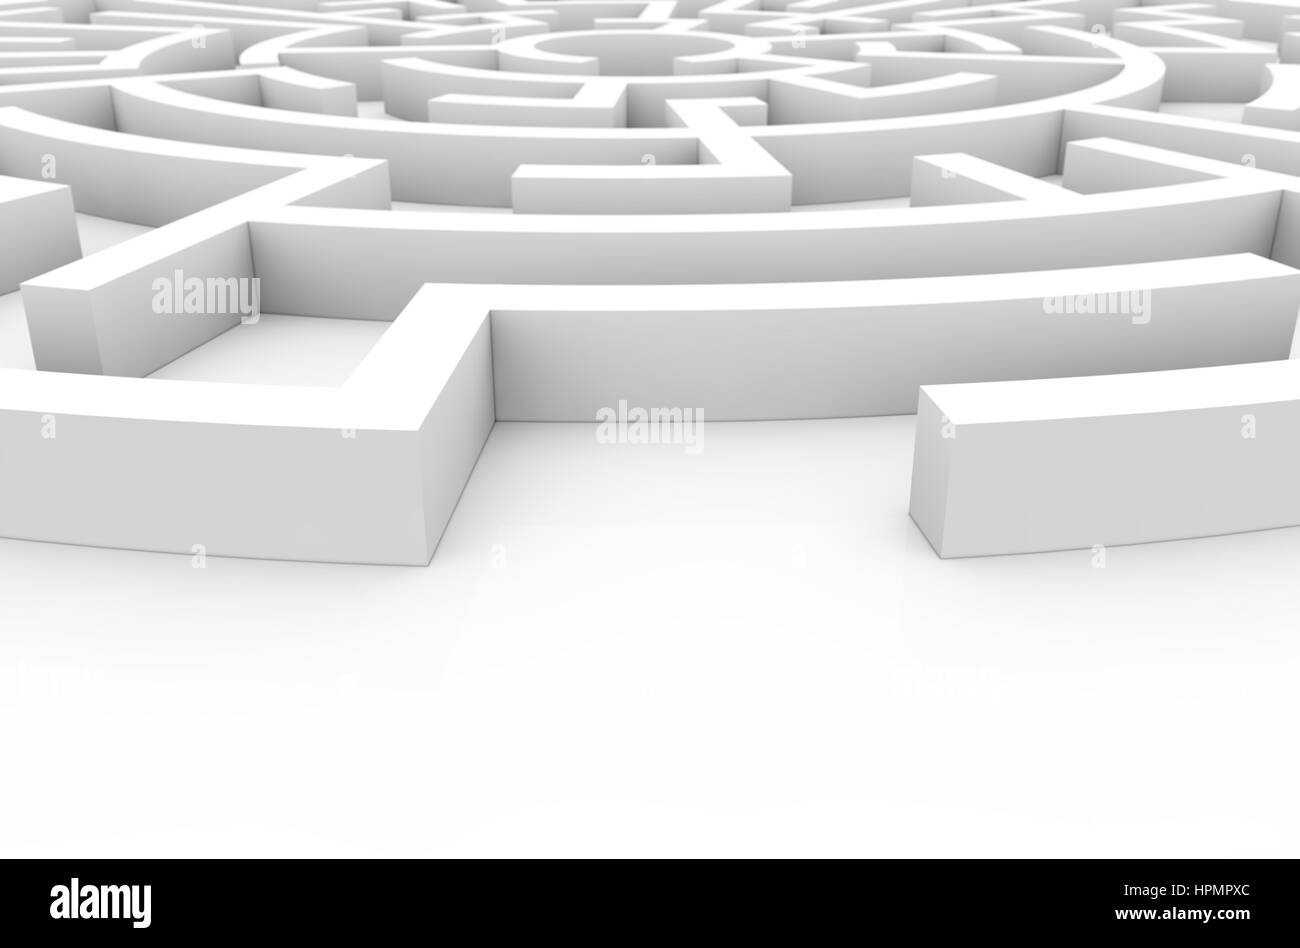 difficulty concept: labyrinth render - Stock Image